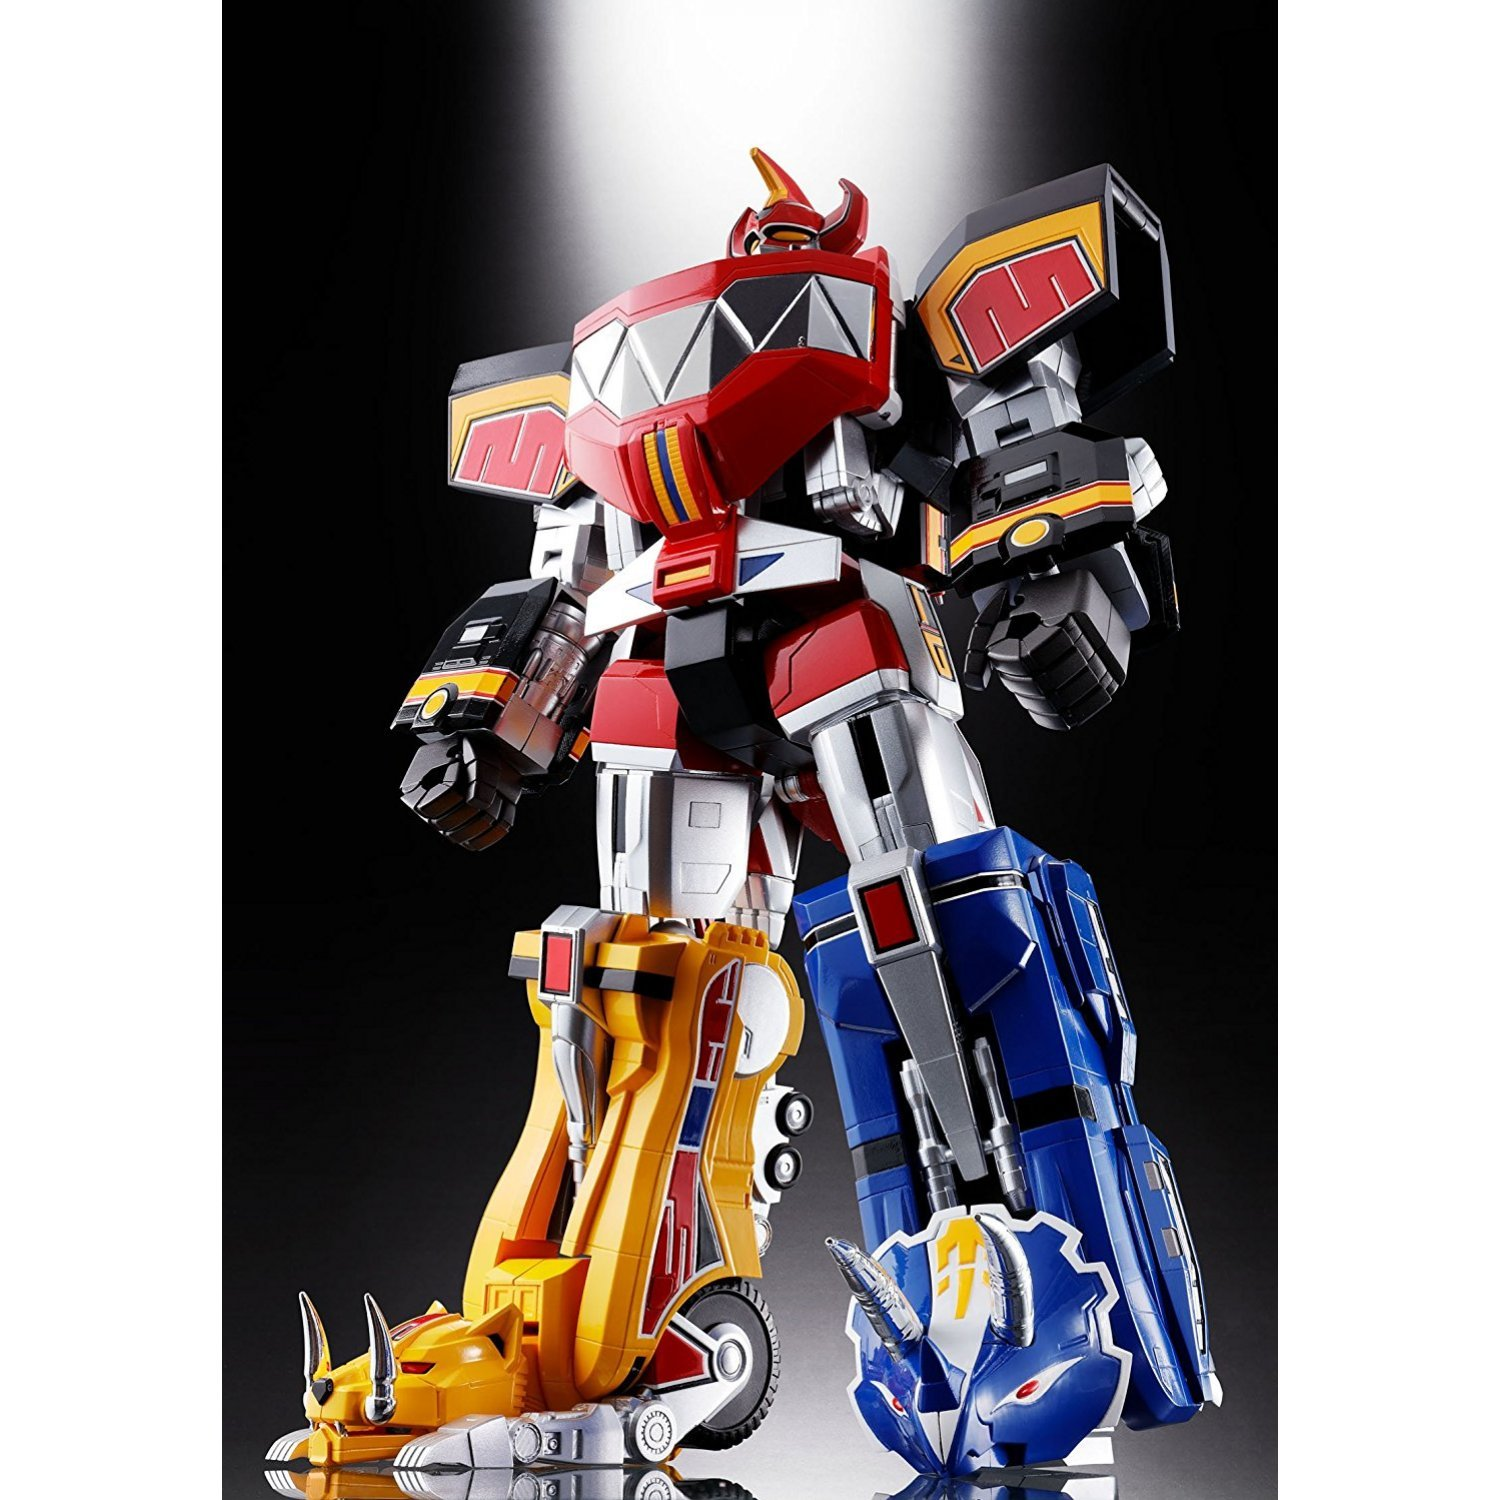 Soul of Chogokin Presents Shinka Gattai DaiZyuJin from